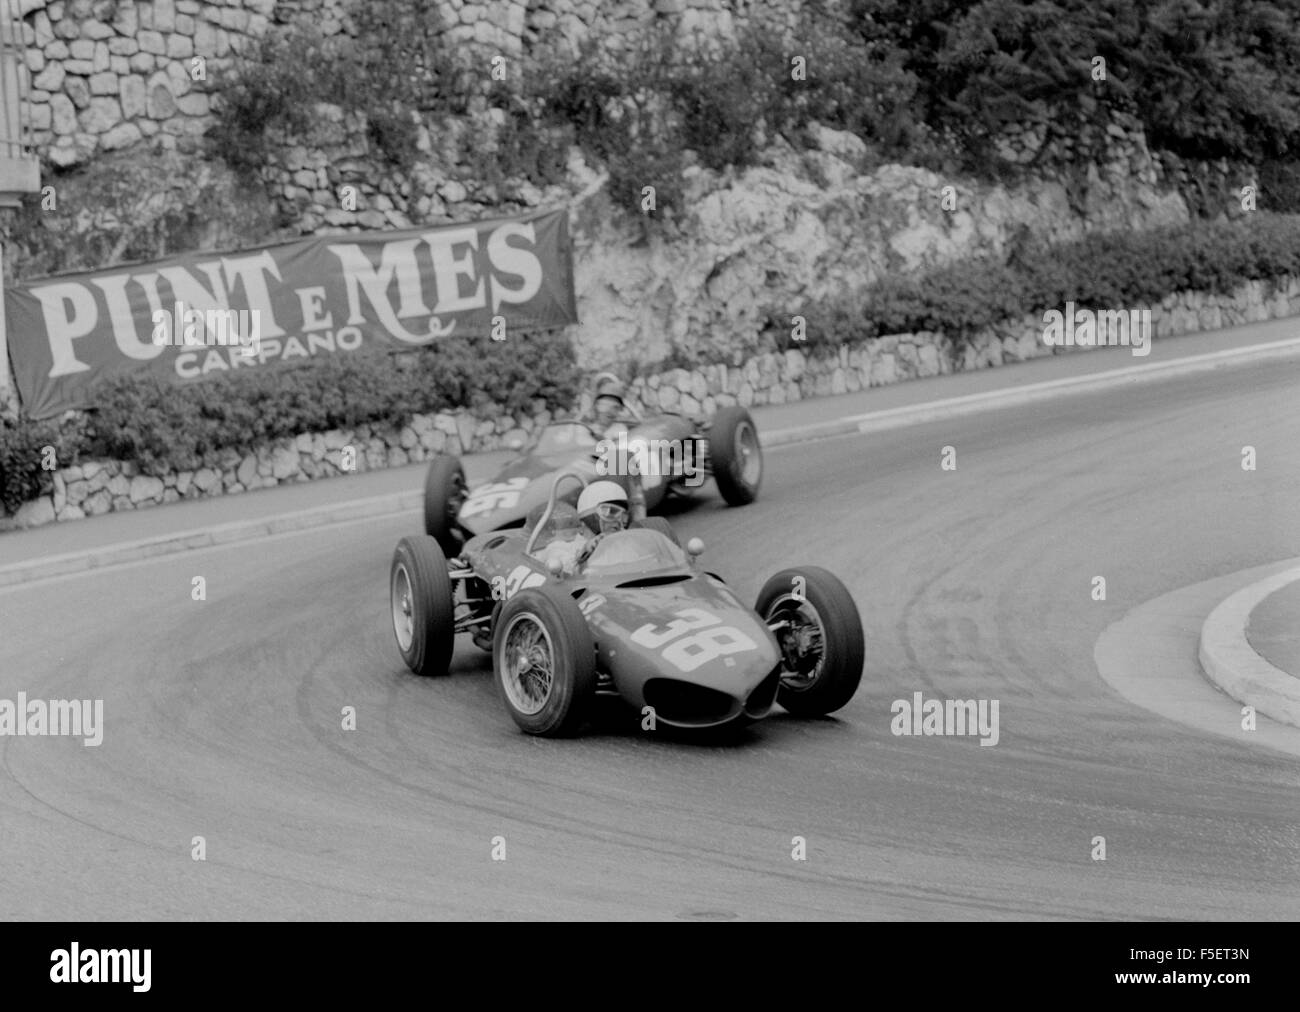 Ferrari 156 Sharknose, Phil Hill leads Richie Ginther through hairpin, 1961 Monaco Grand Prix - Stock Image